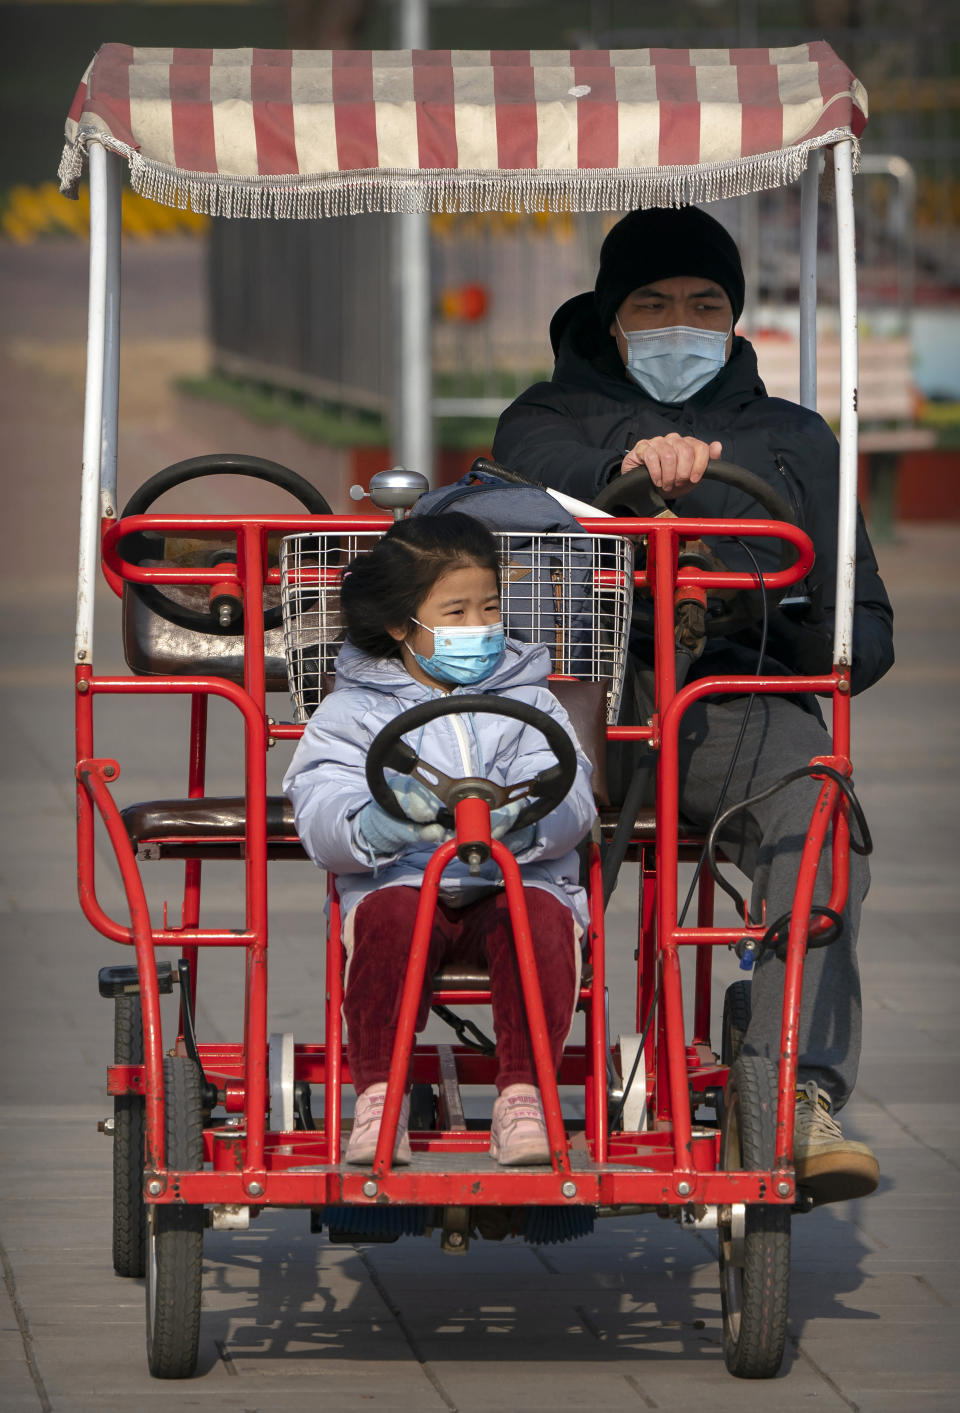 A man and girl wearing face masks to protect against the spread of the coronavirus ride a pedal car at a public park in Beijing, Saturday, Jan. 2, 2021. Wary of another wave of infections, China is urging tens of millions of migrant workers to stay put during next month's Lunar New Year holiday, usually the world's largest annual human migration. (AP Photo/Mark Schiefelbein)